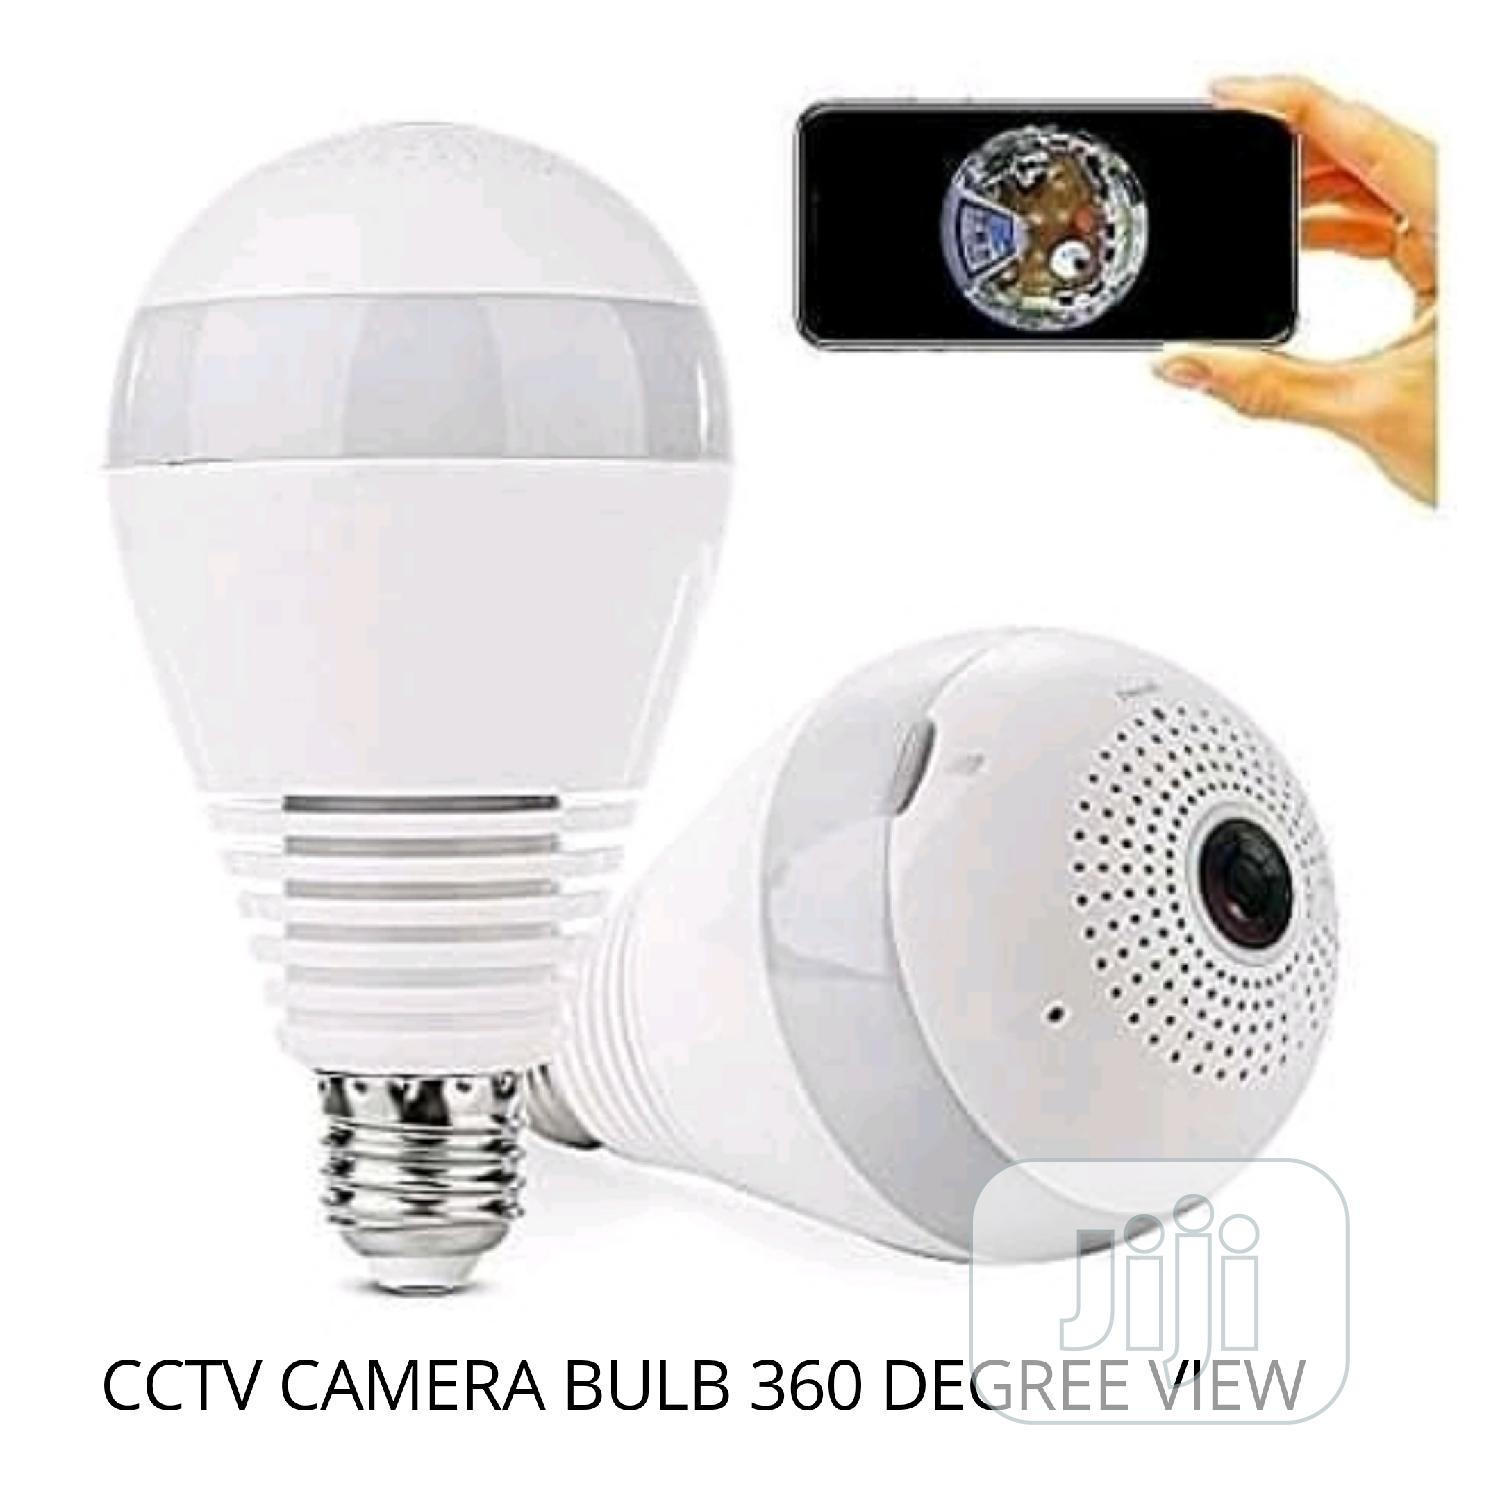 CCTV Camera Wi-fi With Bulb